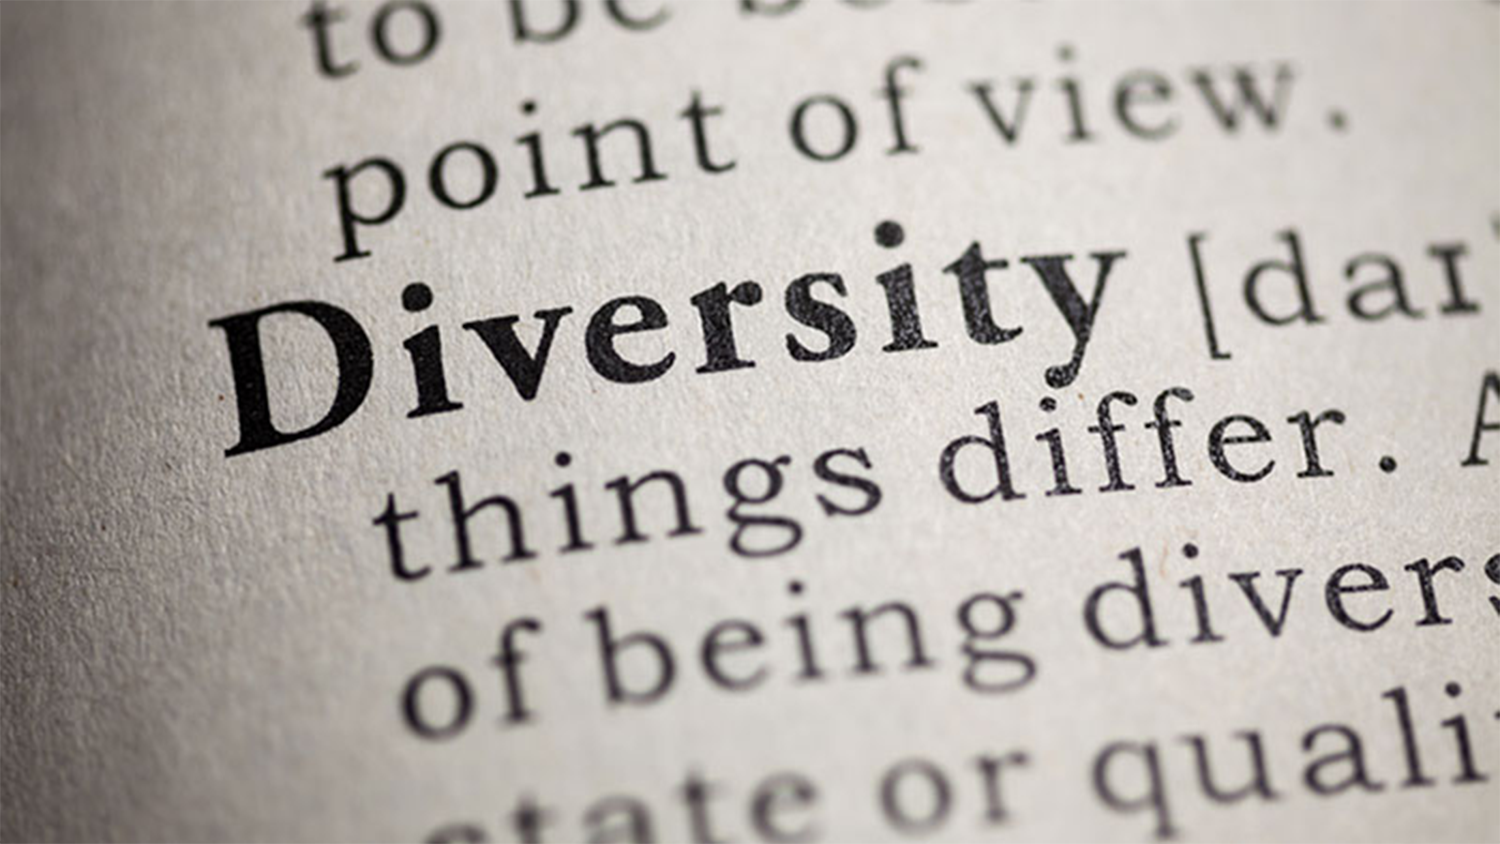 Diversity in the dictionary